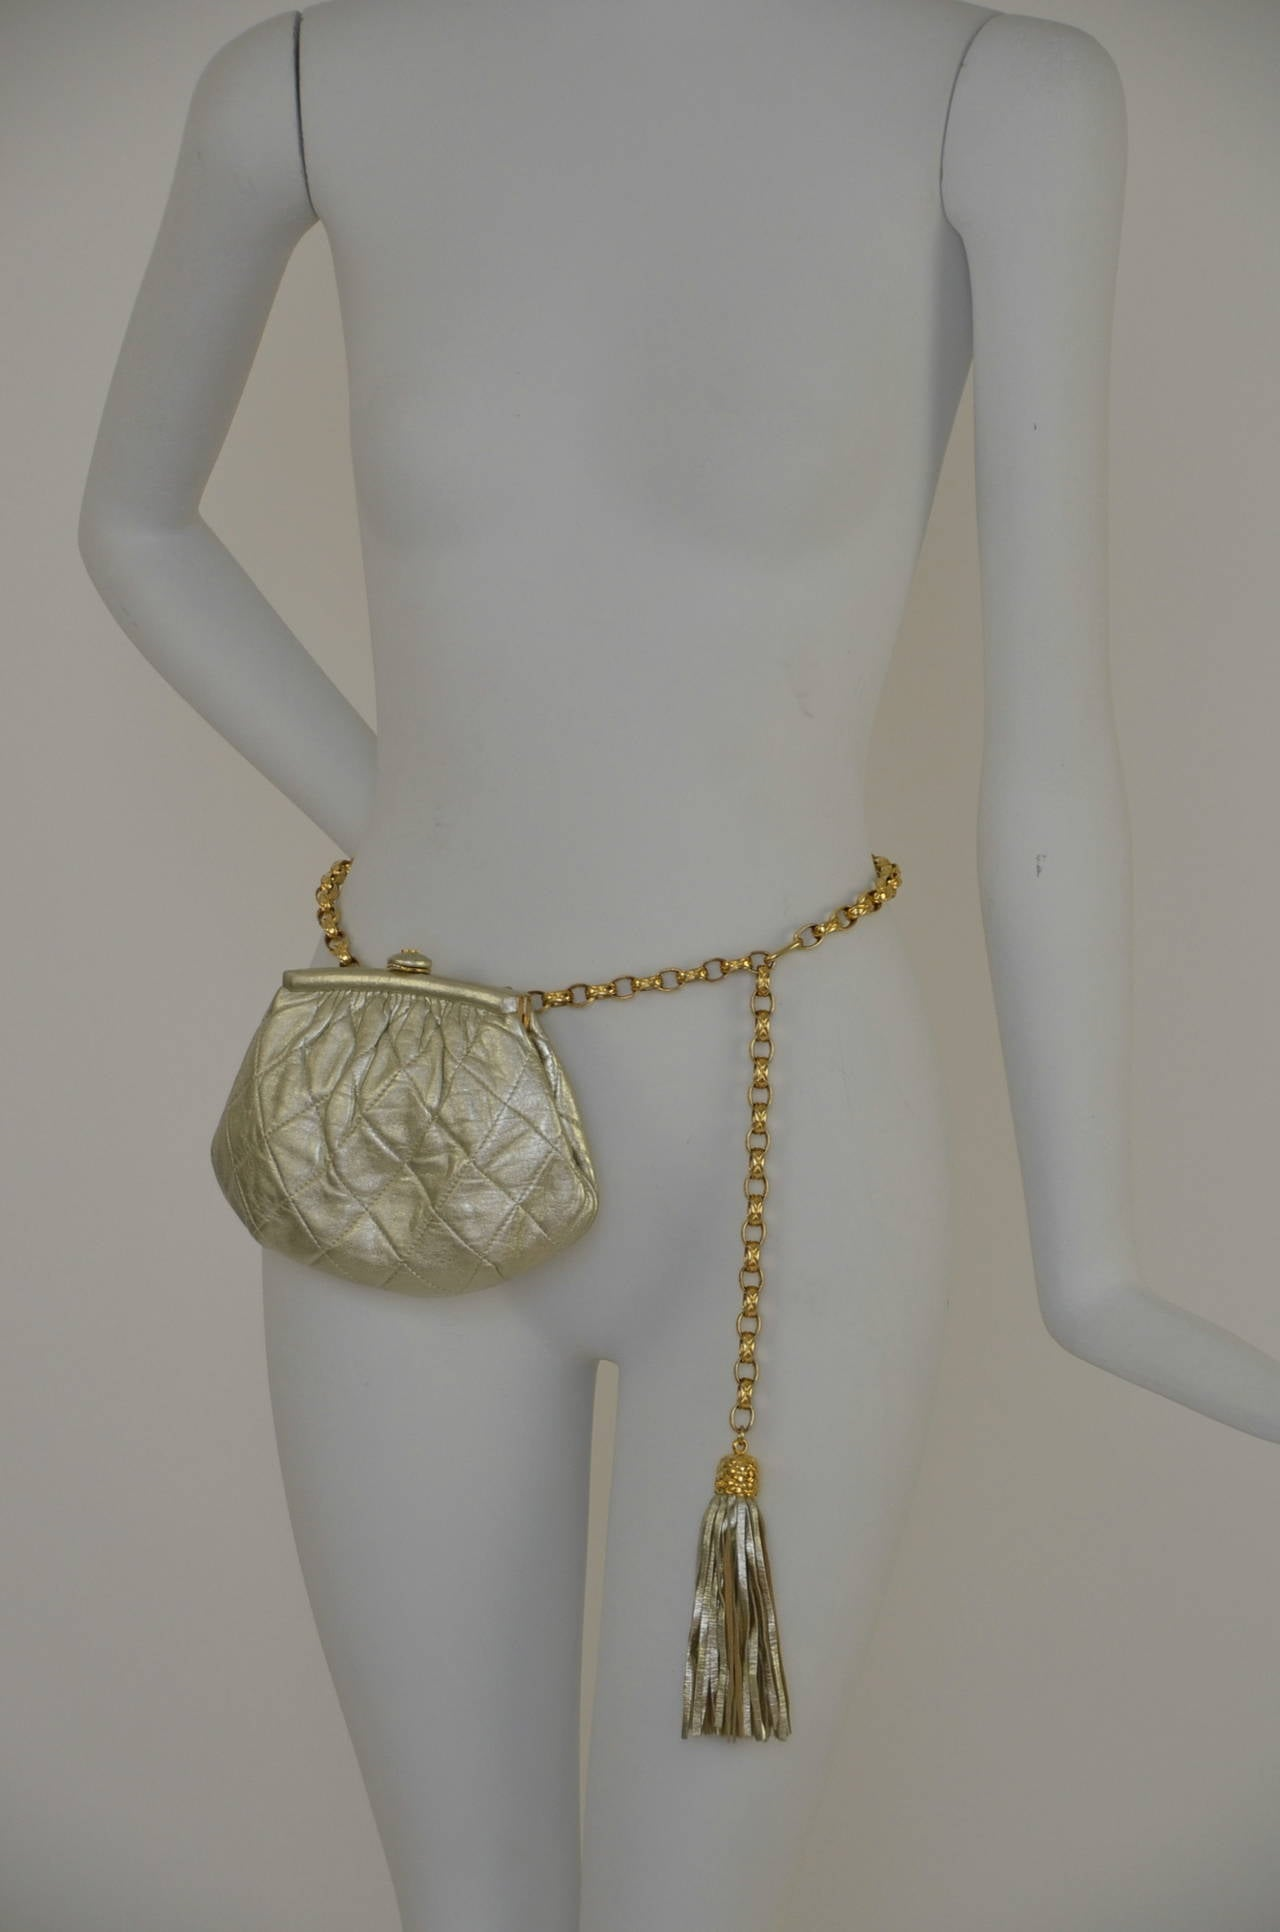 Chanel Vintage Waist Evening  Bag Clutch With Tassel For Sale 2